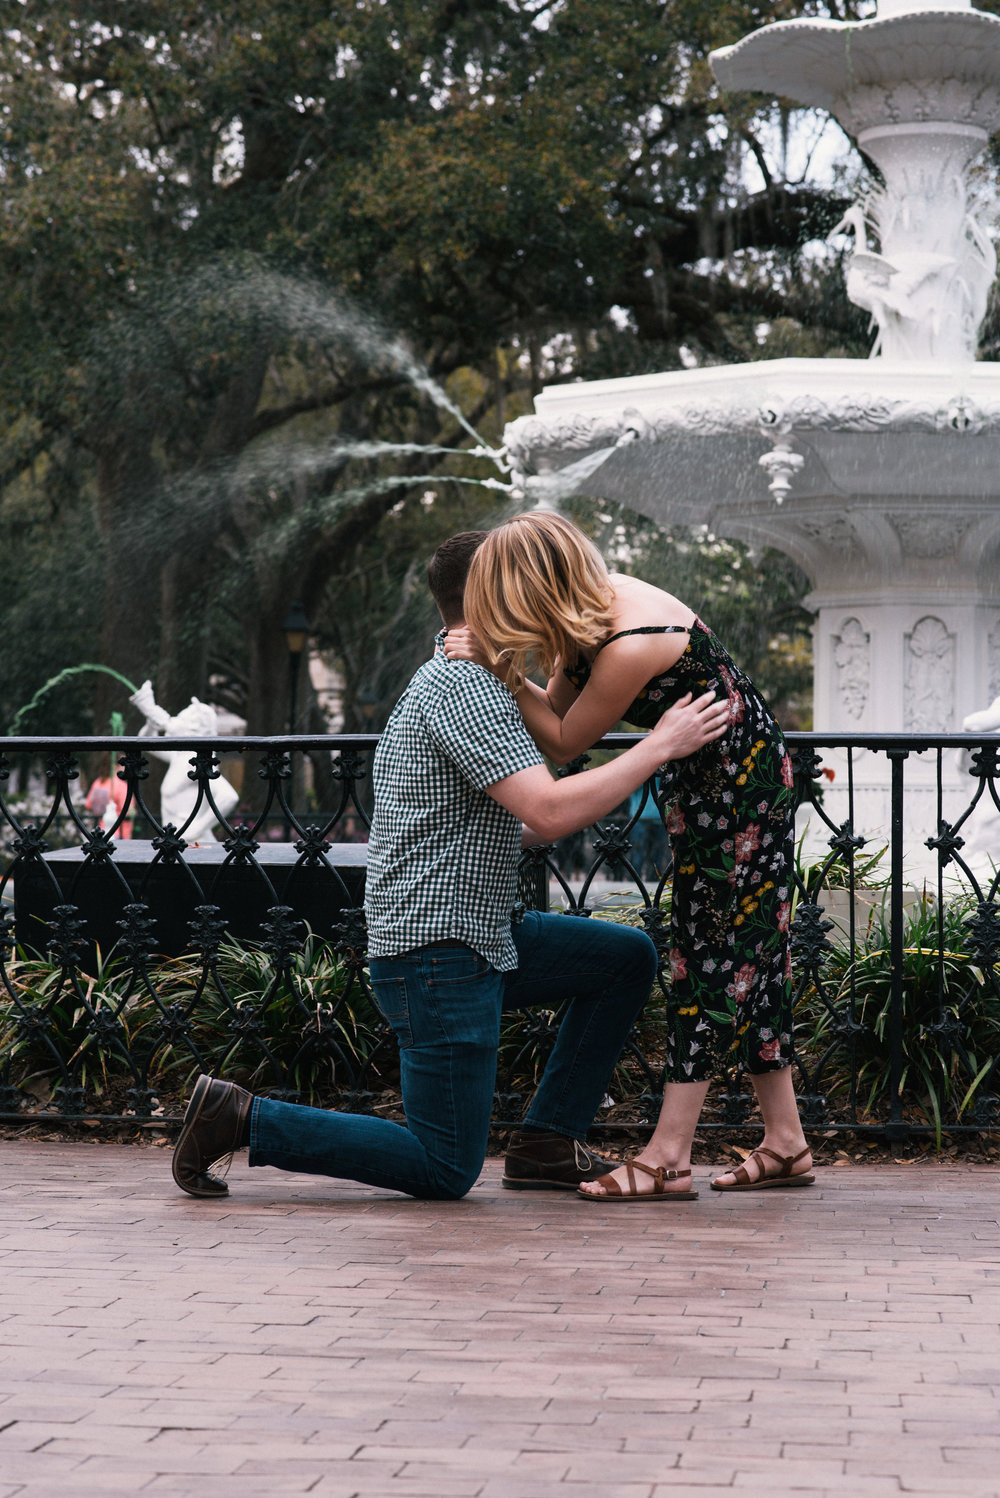 jake-and-allie-engagement-forsyth-park-savannah-flytographer- (6 of 47).jpg